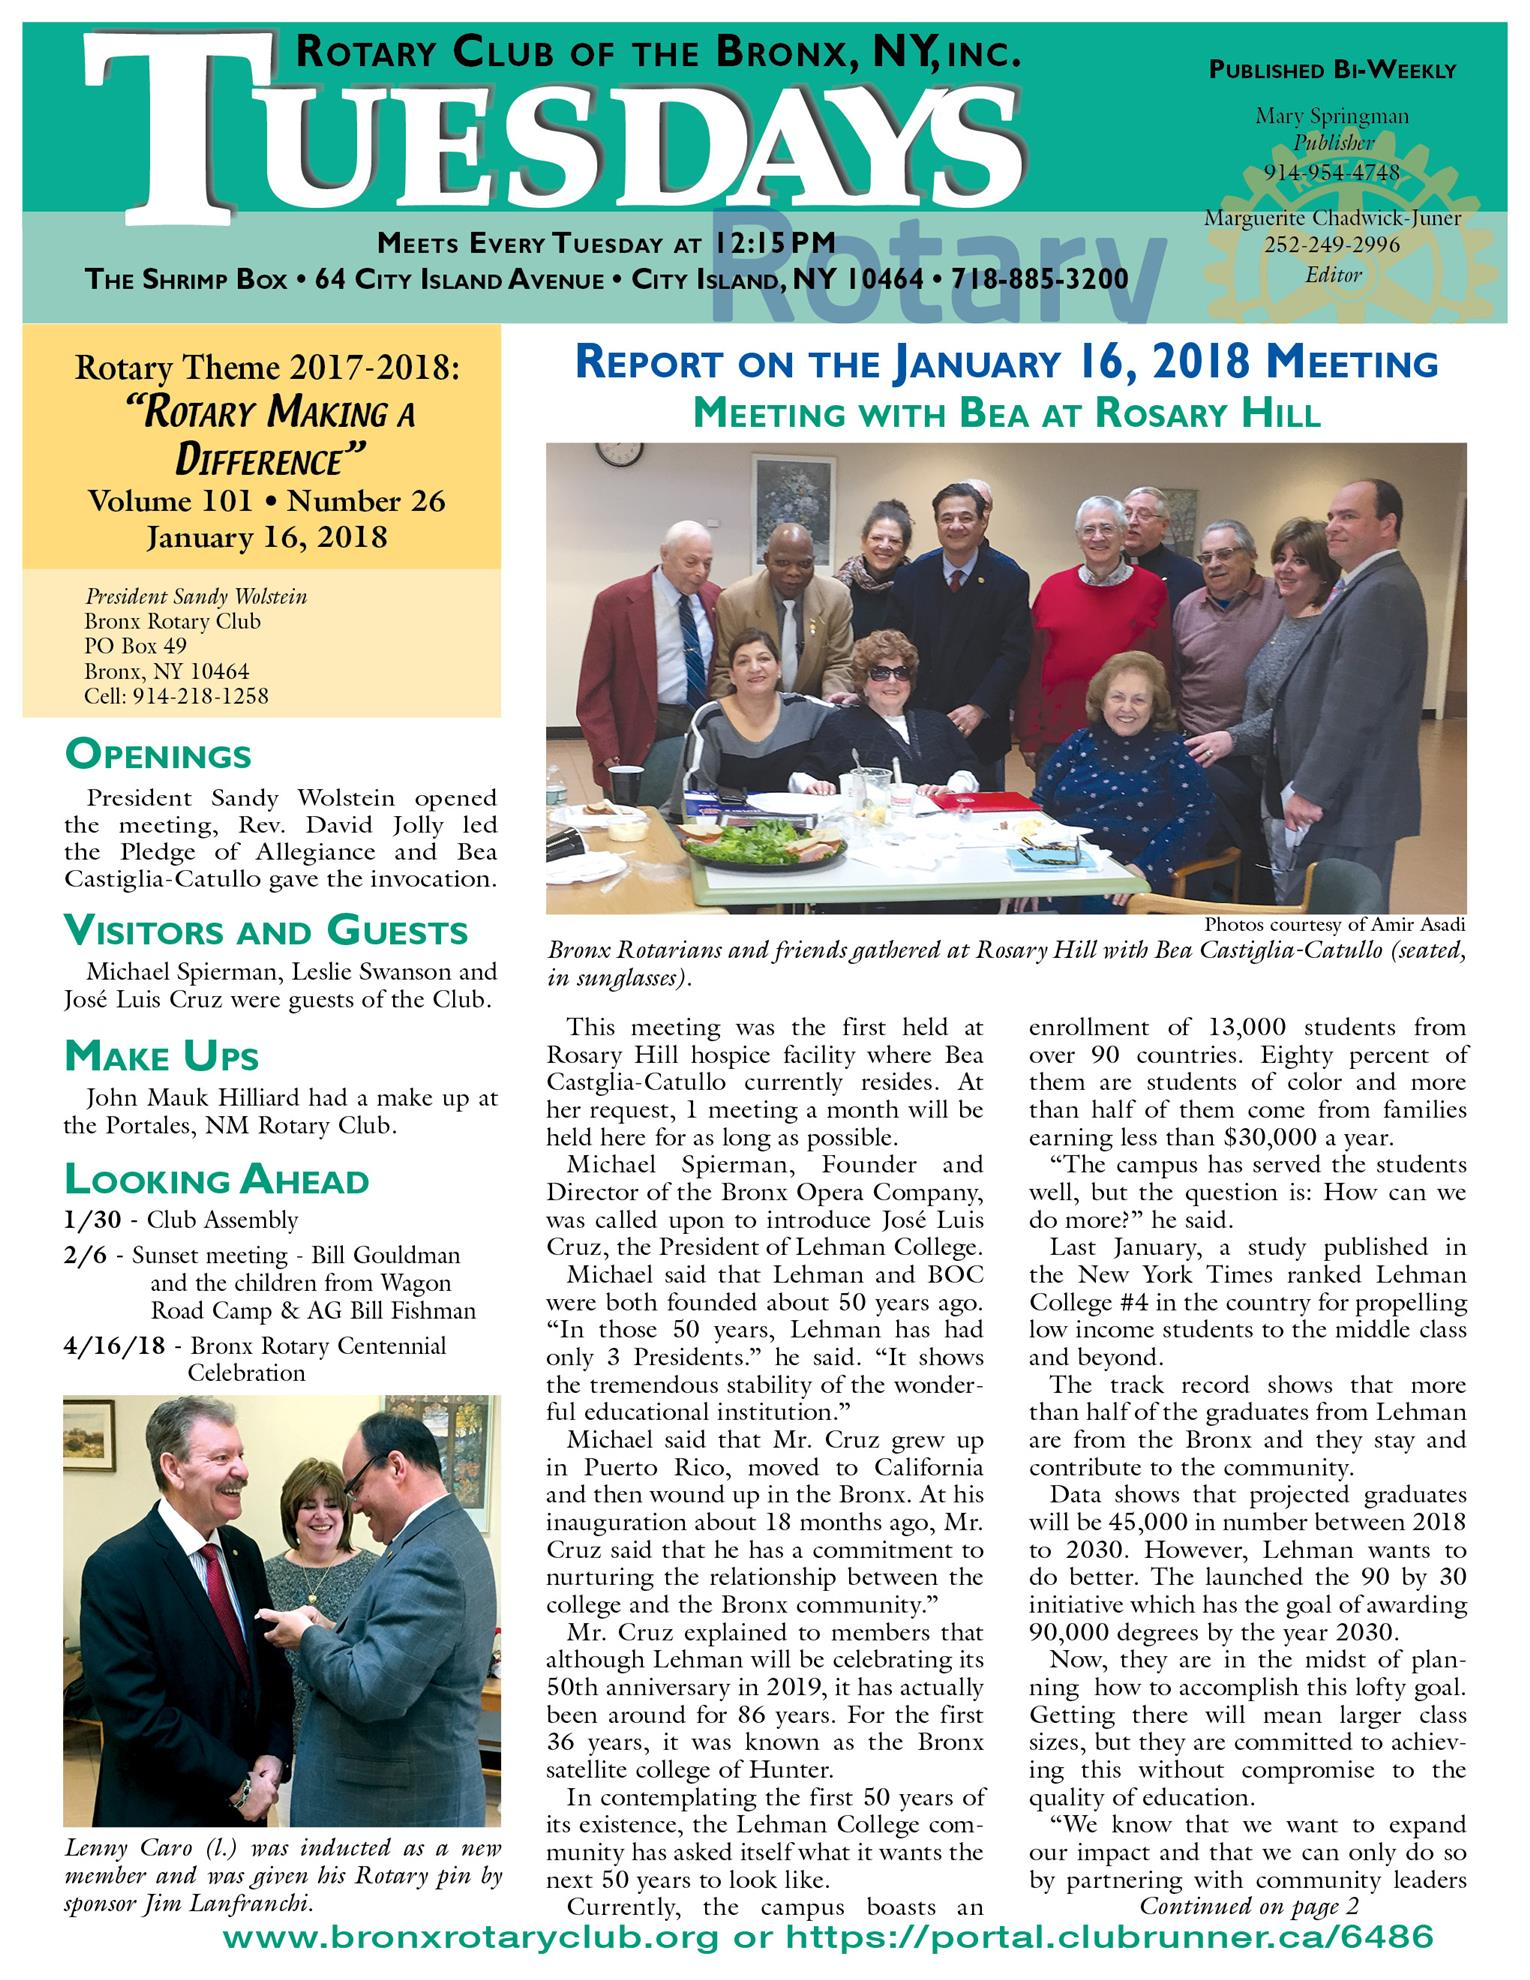 Tuesdays Newsletter 1/16 & 1/23/18 p1